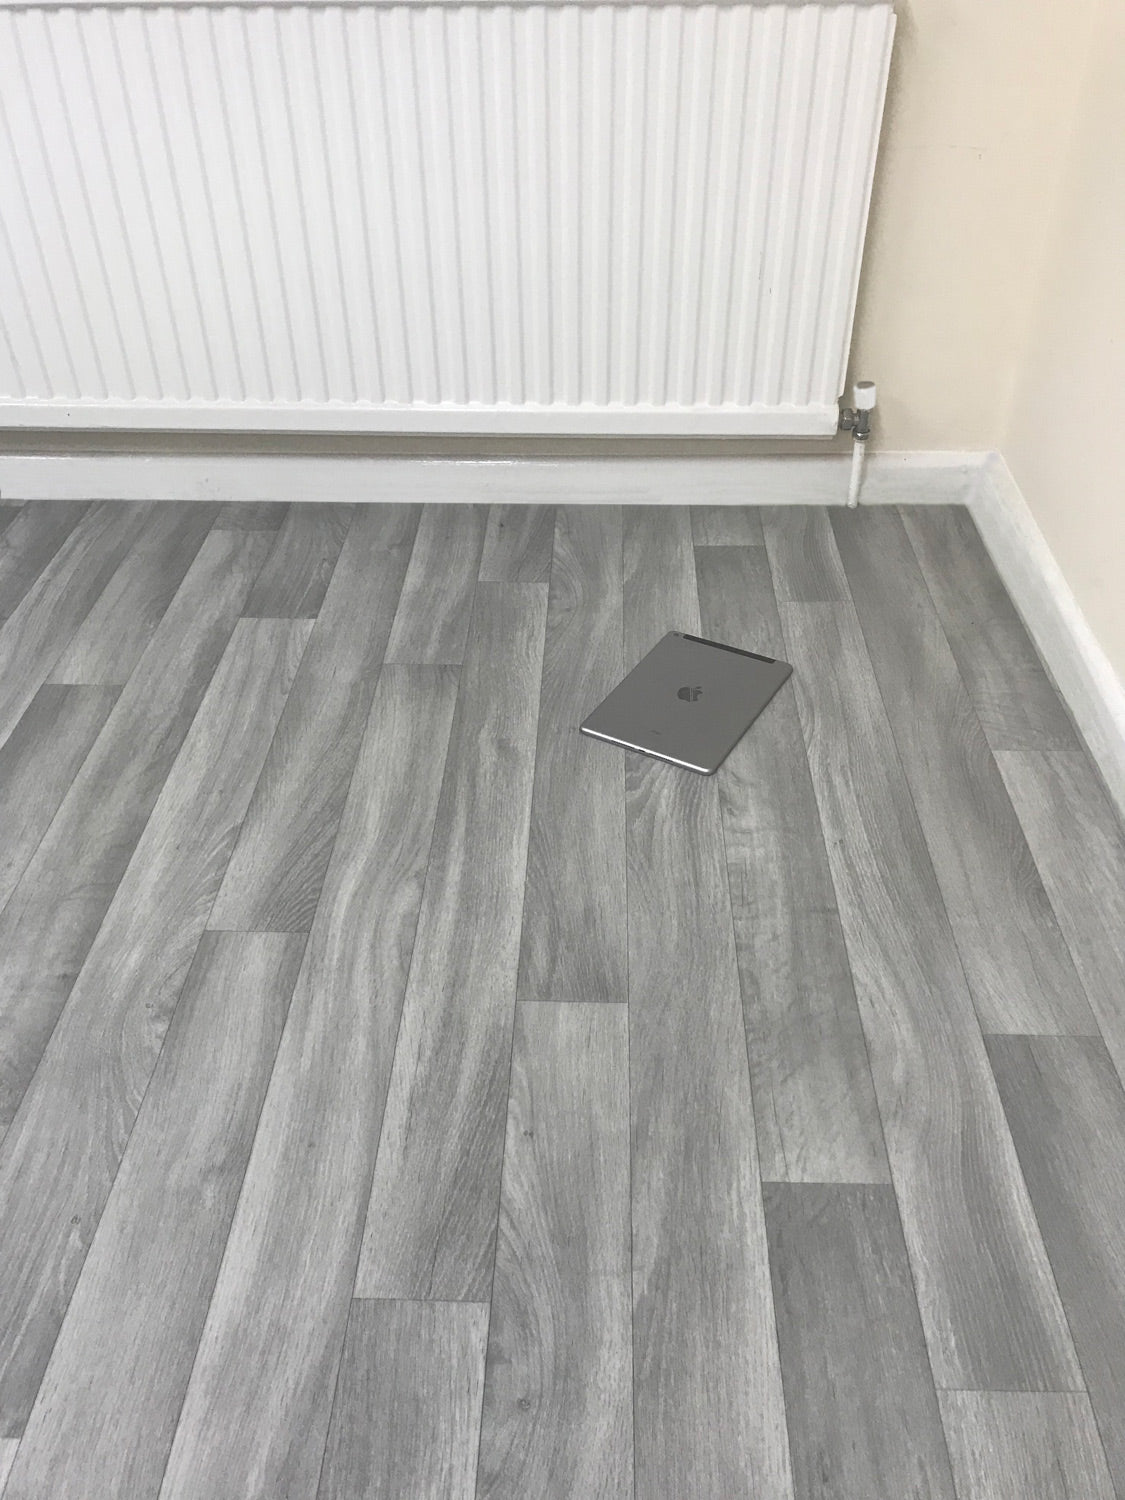 Astounding Grey Vinyl Lino Roll Flooring Ideal For Kitchens Bathrooms Home Interior And Landscaping Eliaenasavecom